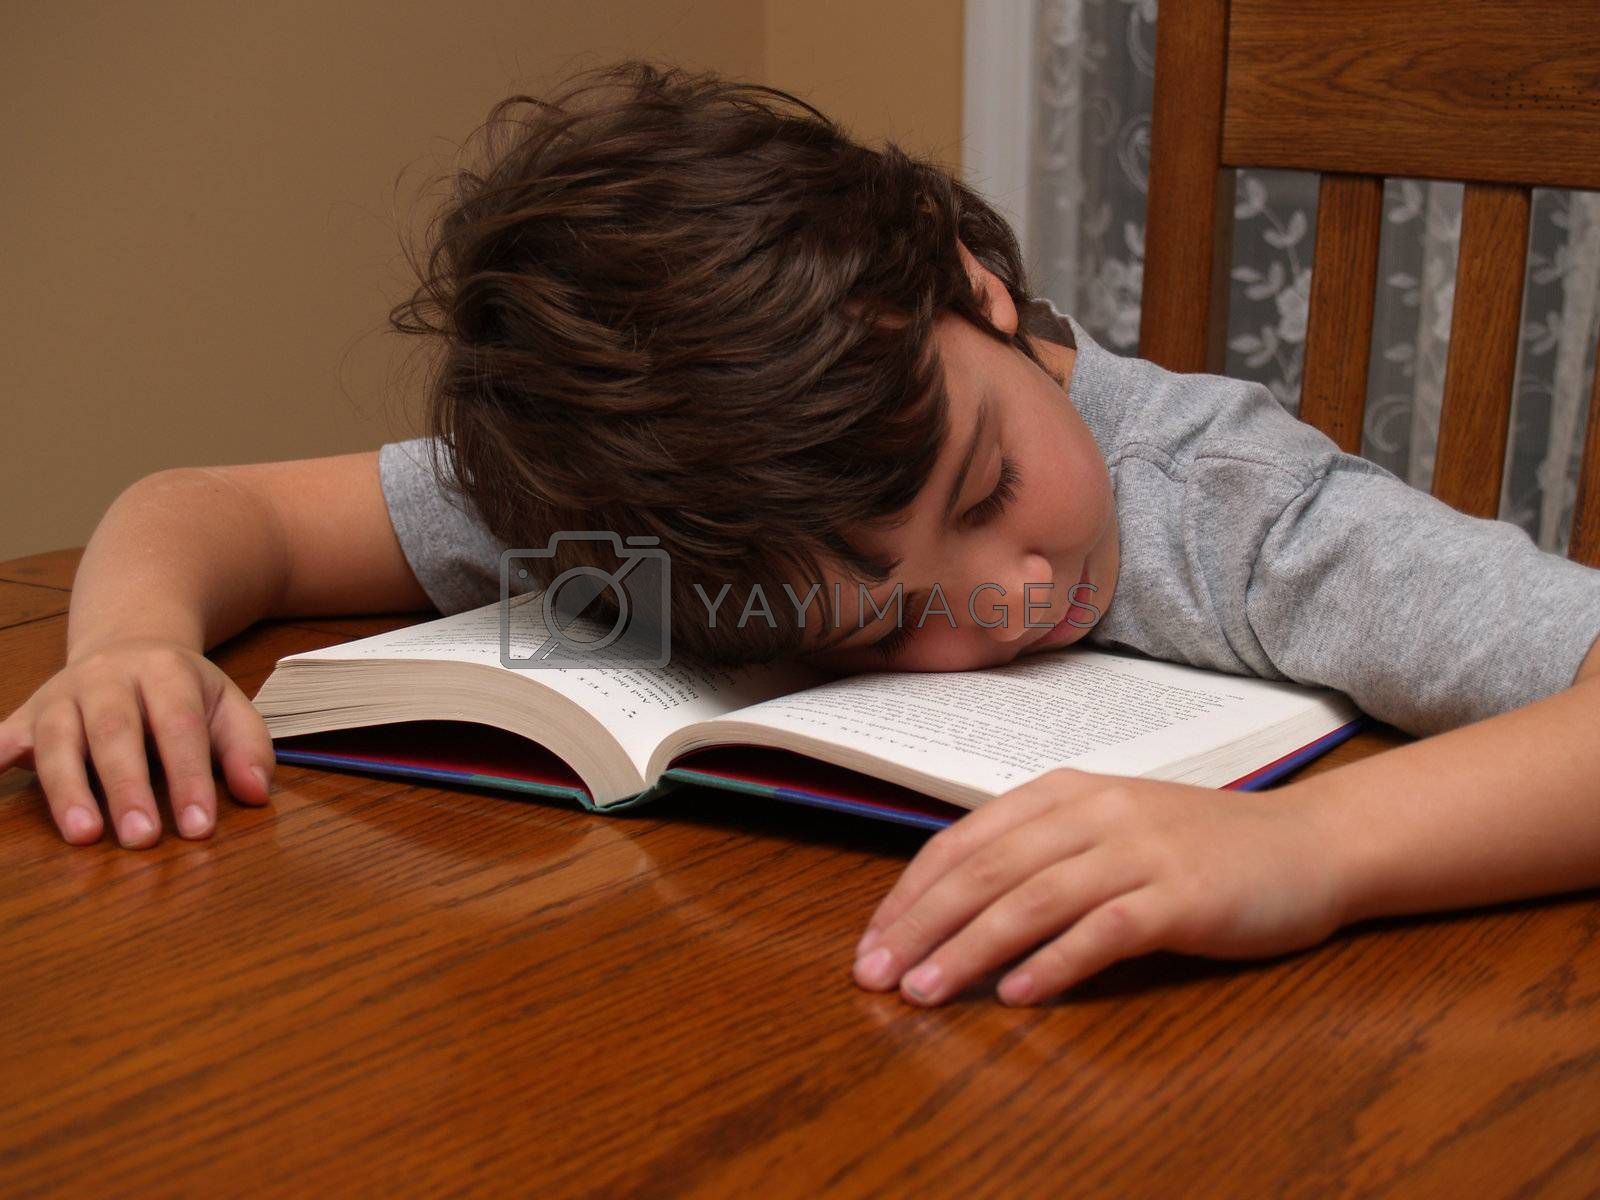 a young boy who fell asleep while reading a book